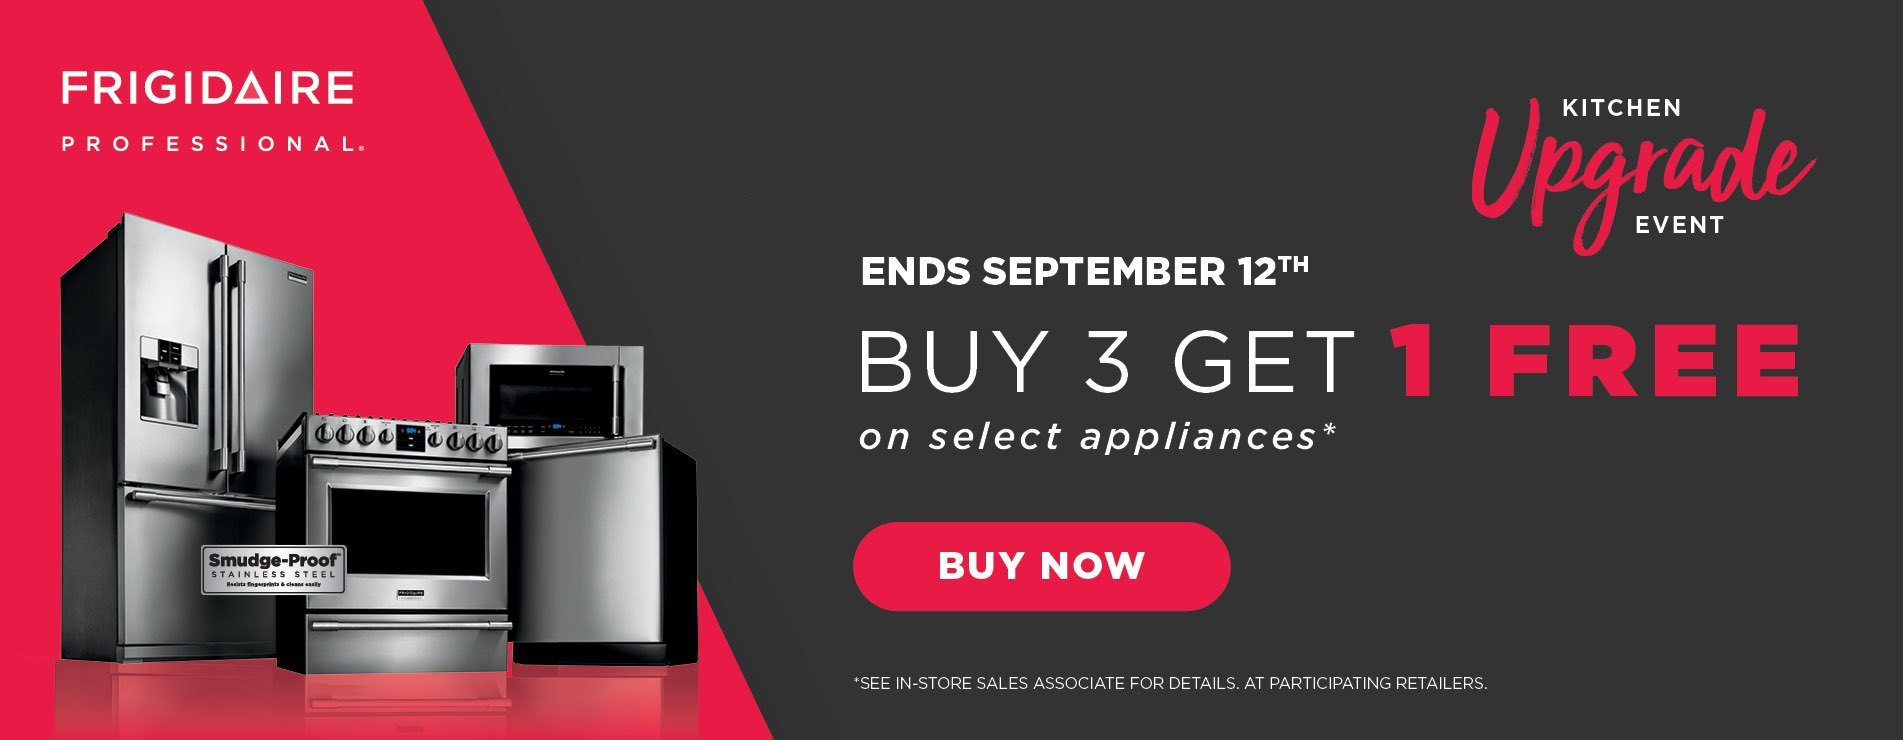 Frigidaire Buy 3